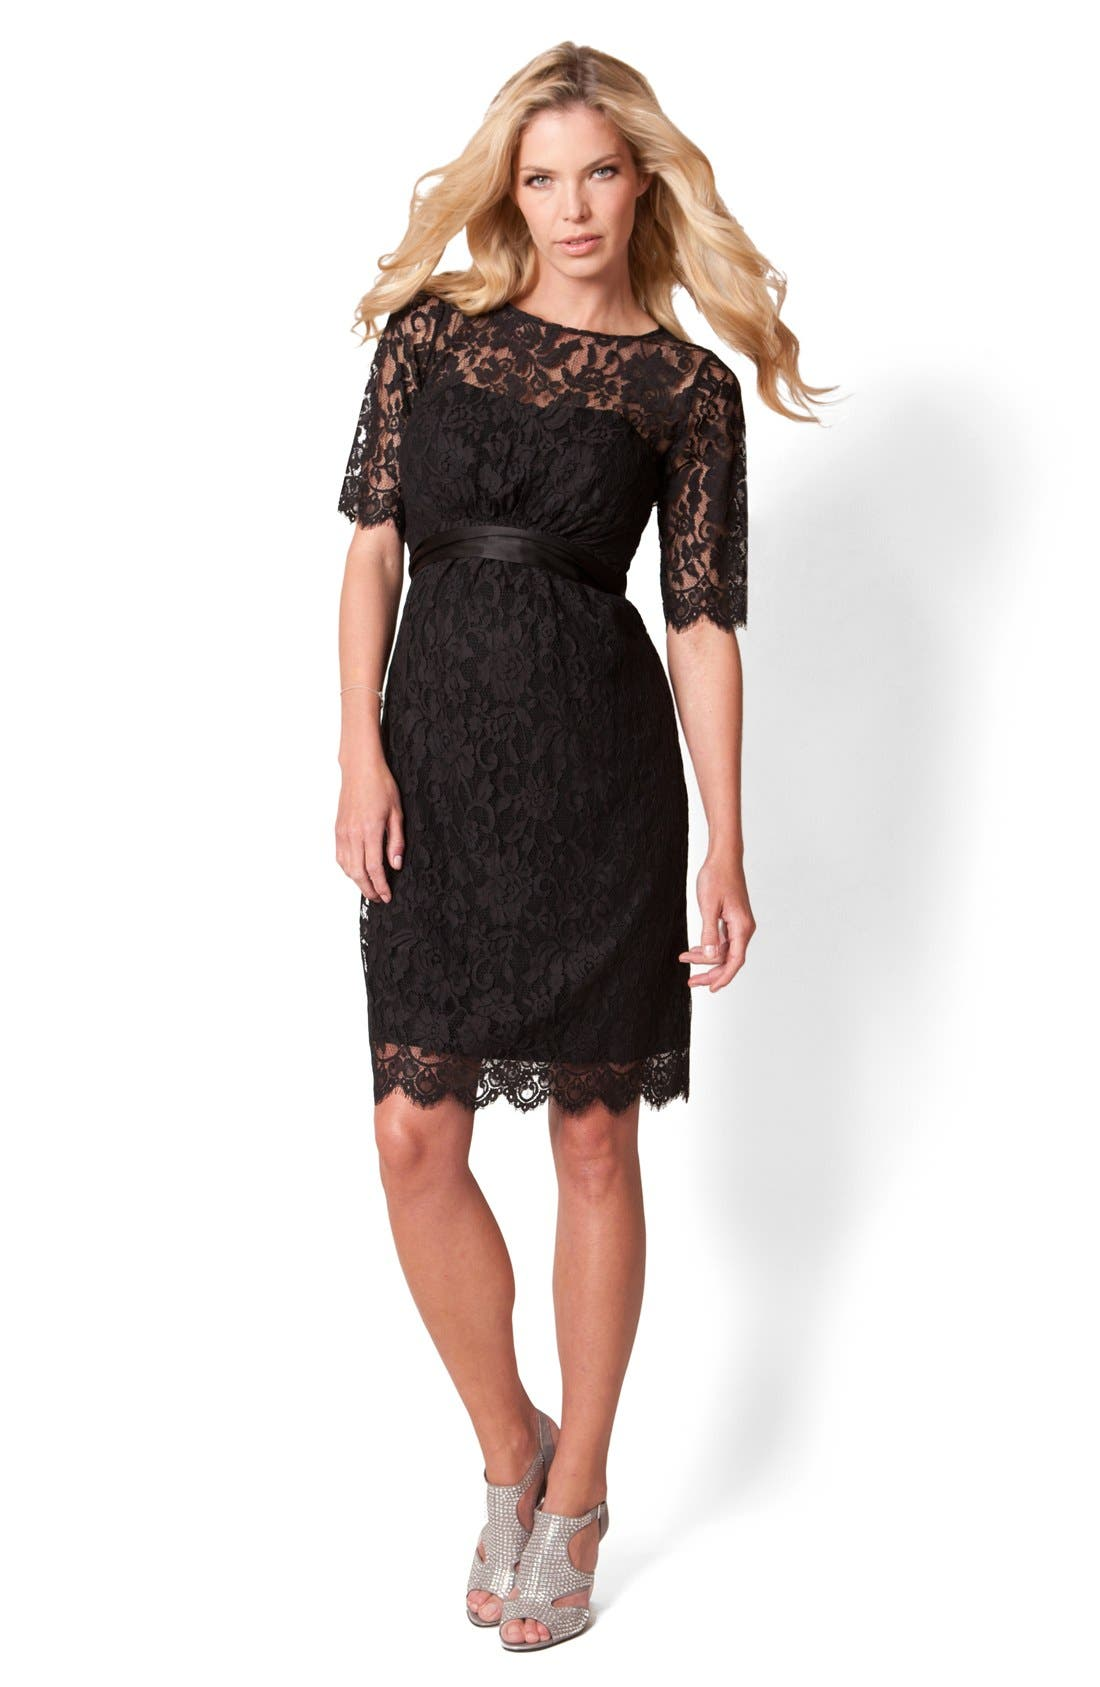 'Ingrid Luxe' Lace Maternity Dress,                             Alternate thumbnail 2, color,                             001